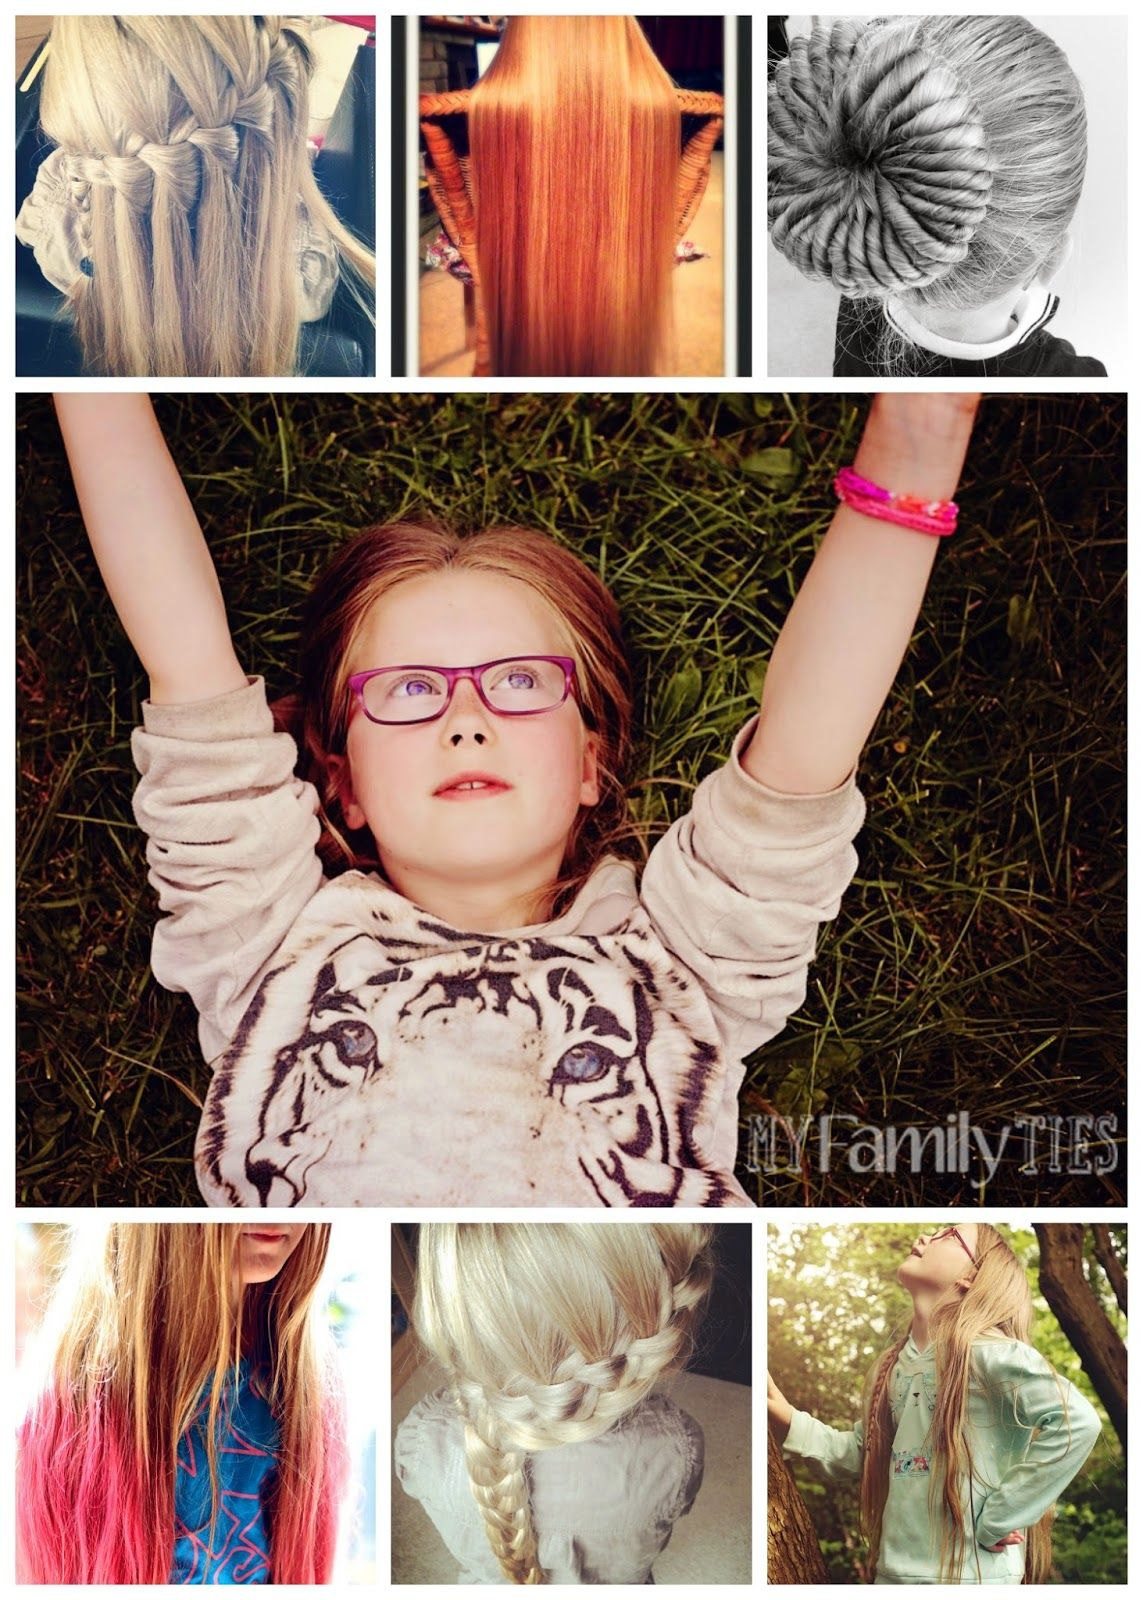 My Family Ties: Children's Party Planning Ideas- My Family Ties